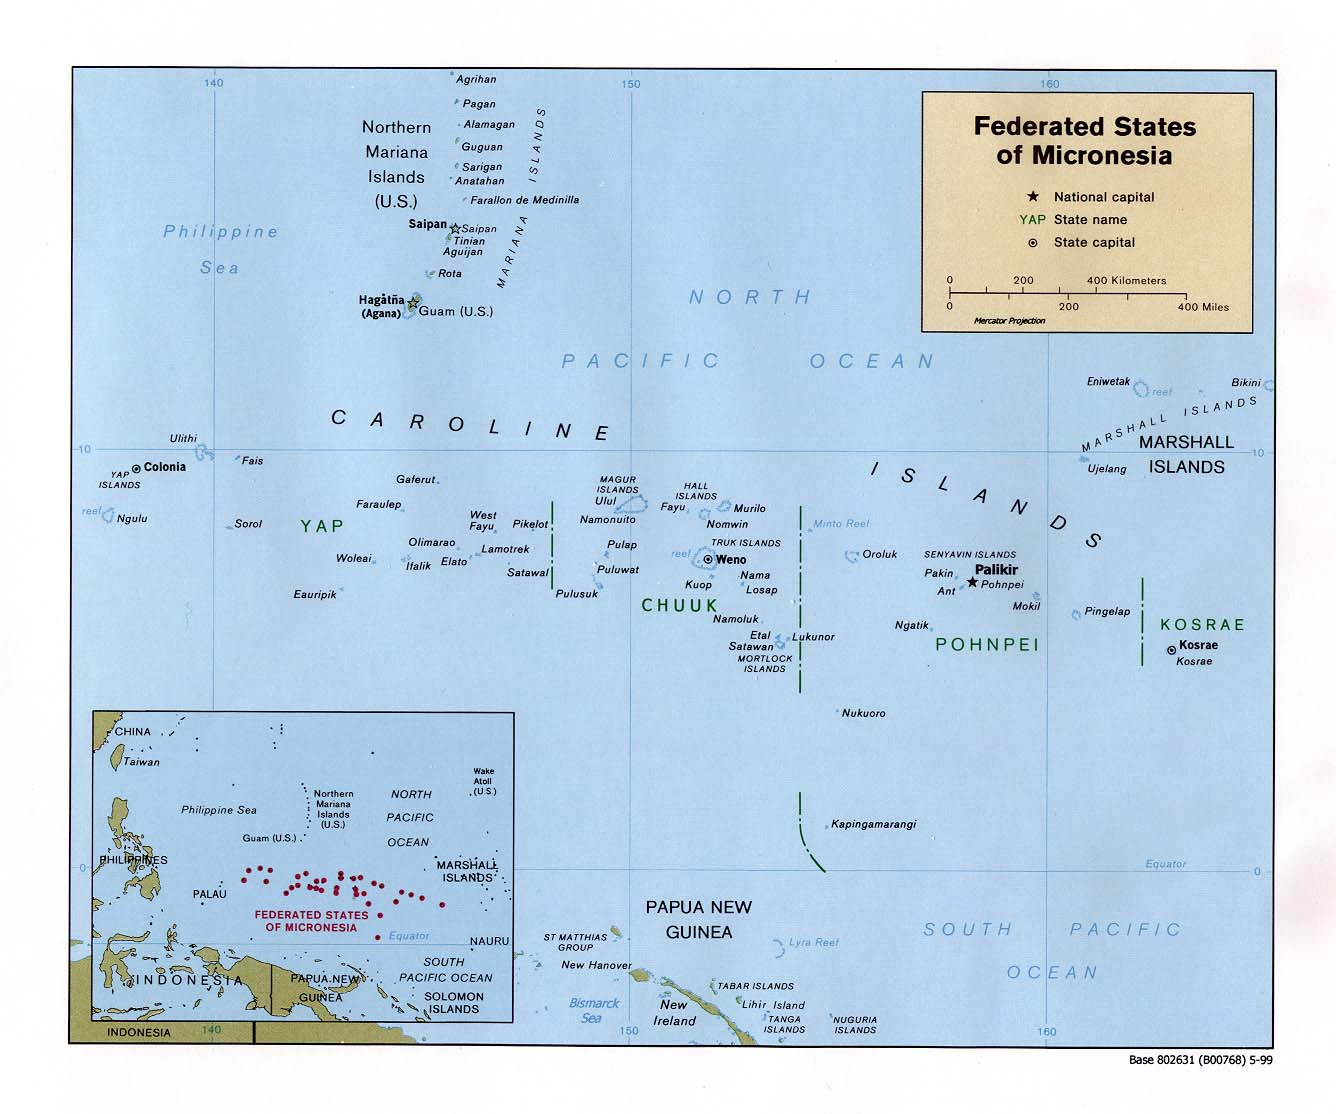 Pohnpei sohte ehu: A survey- and interview-based approach to